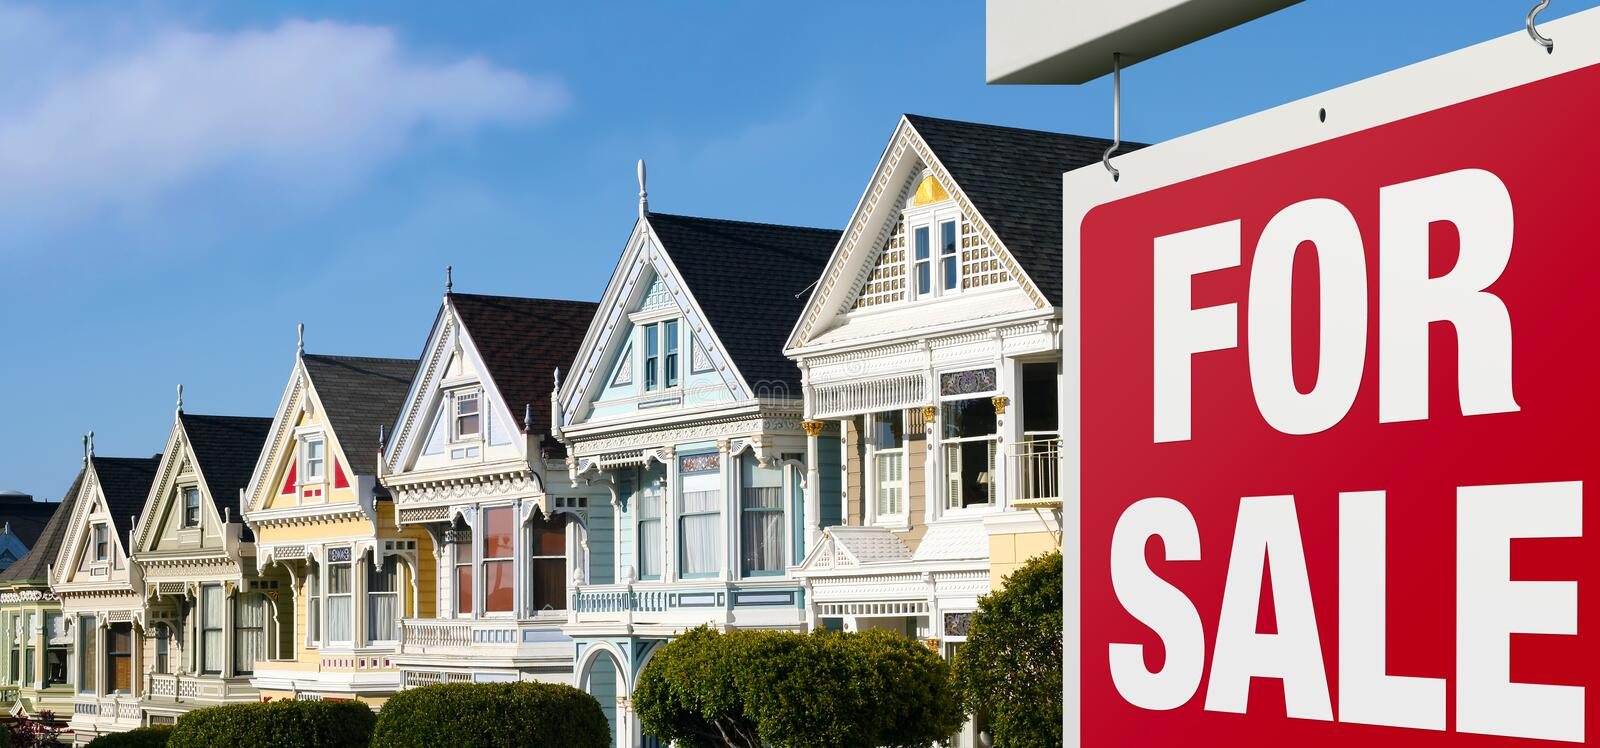 Row houses for sale in san francisco stock image image for Row houses for sale